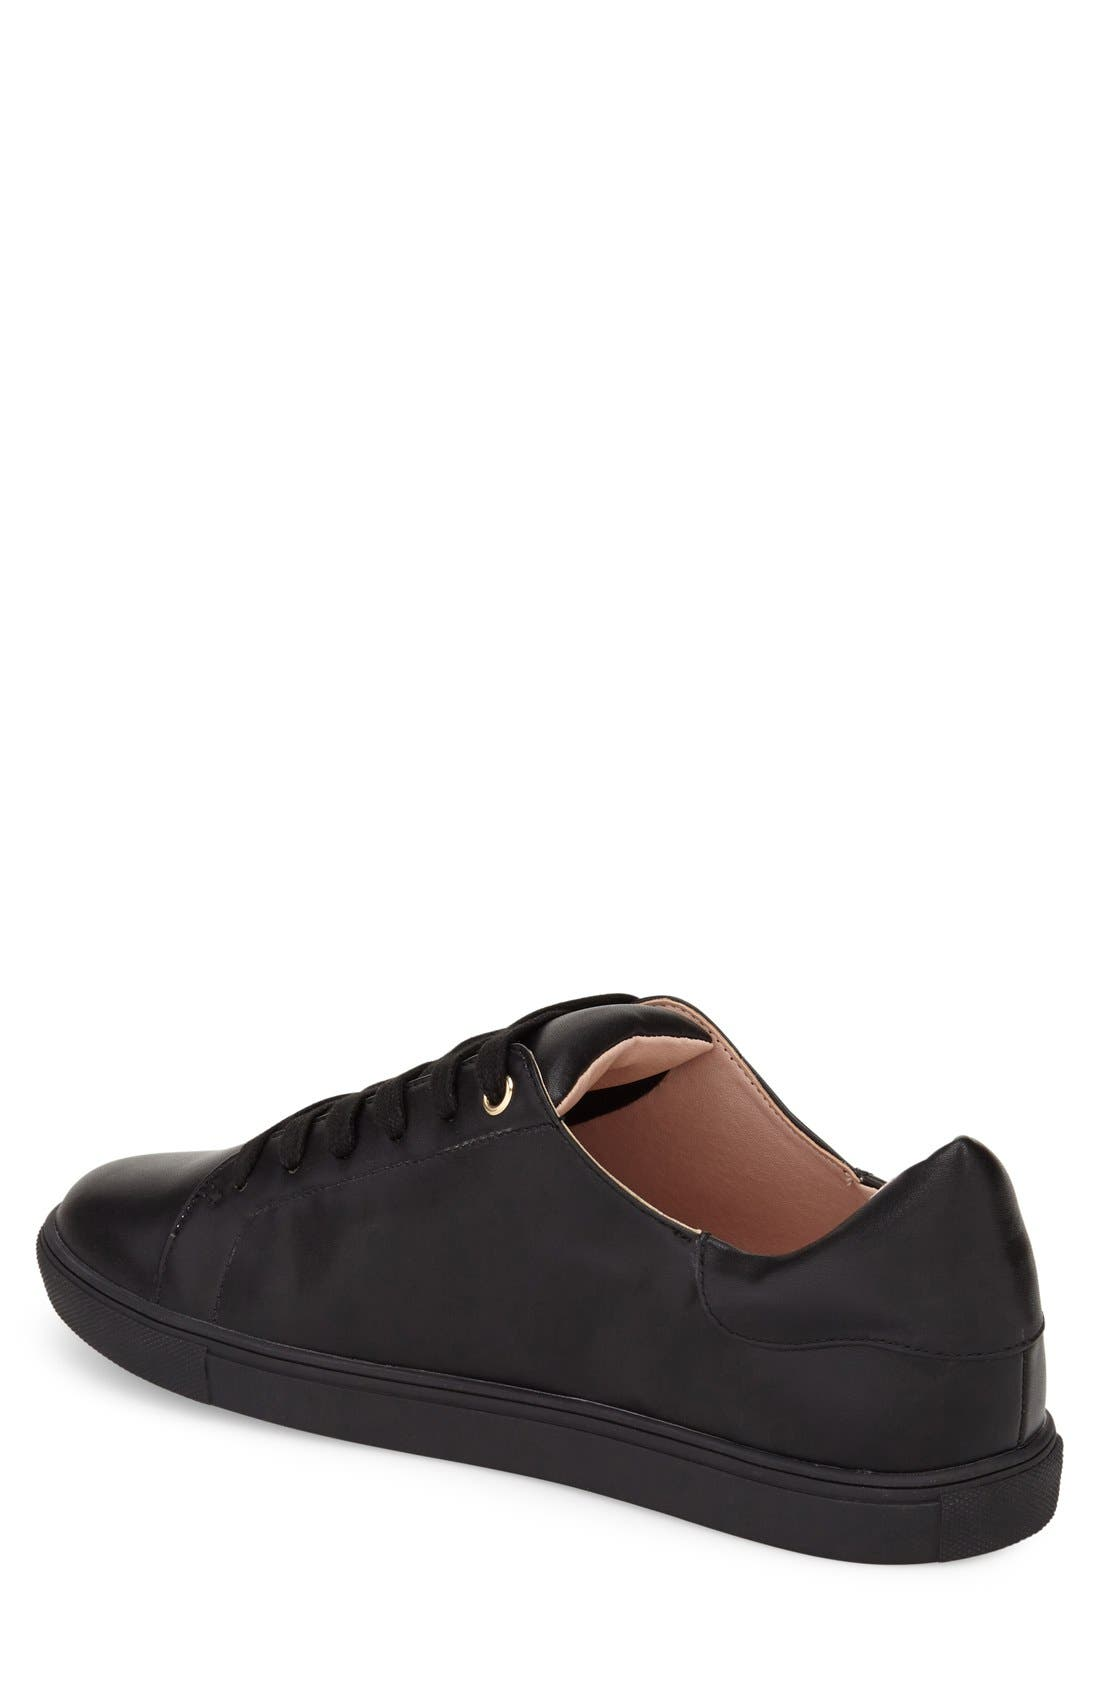 Alternate Image 2  - Topshop Catseye Sneaker (Women)